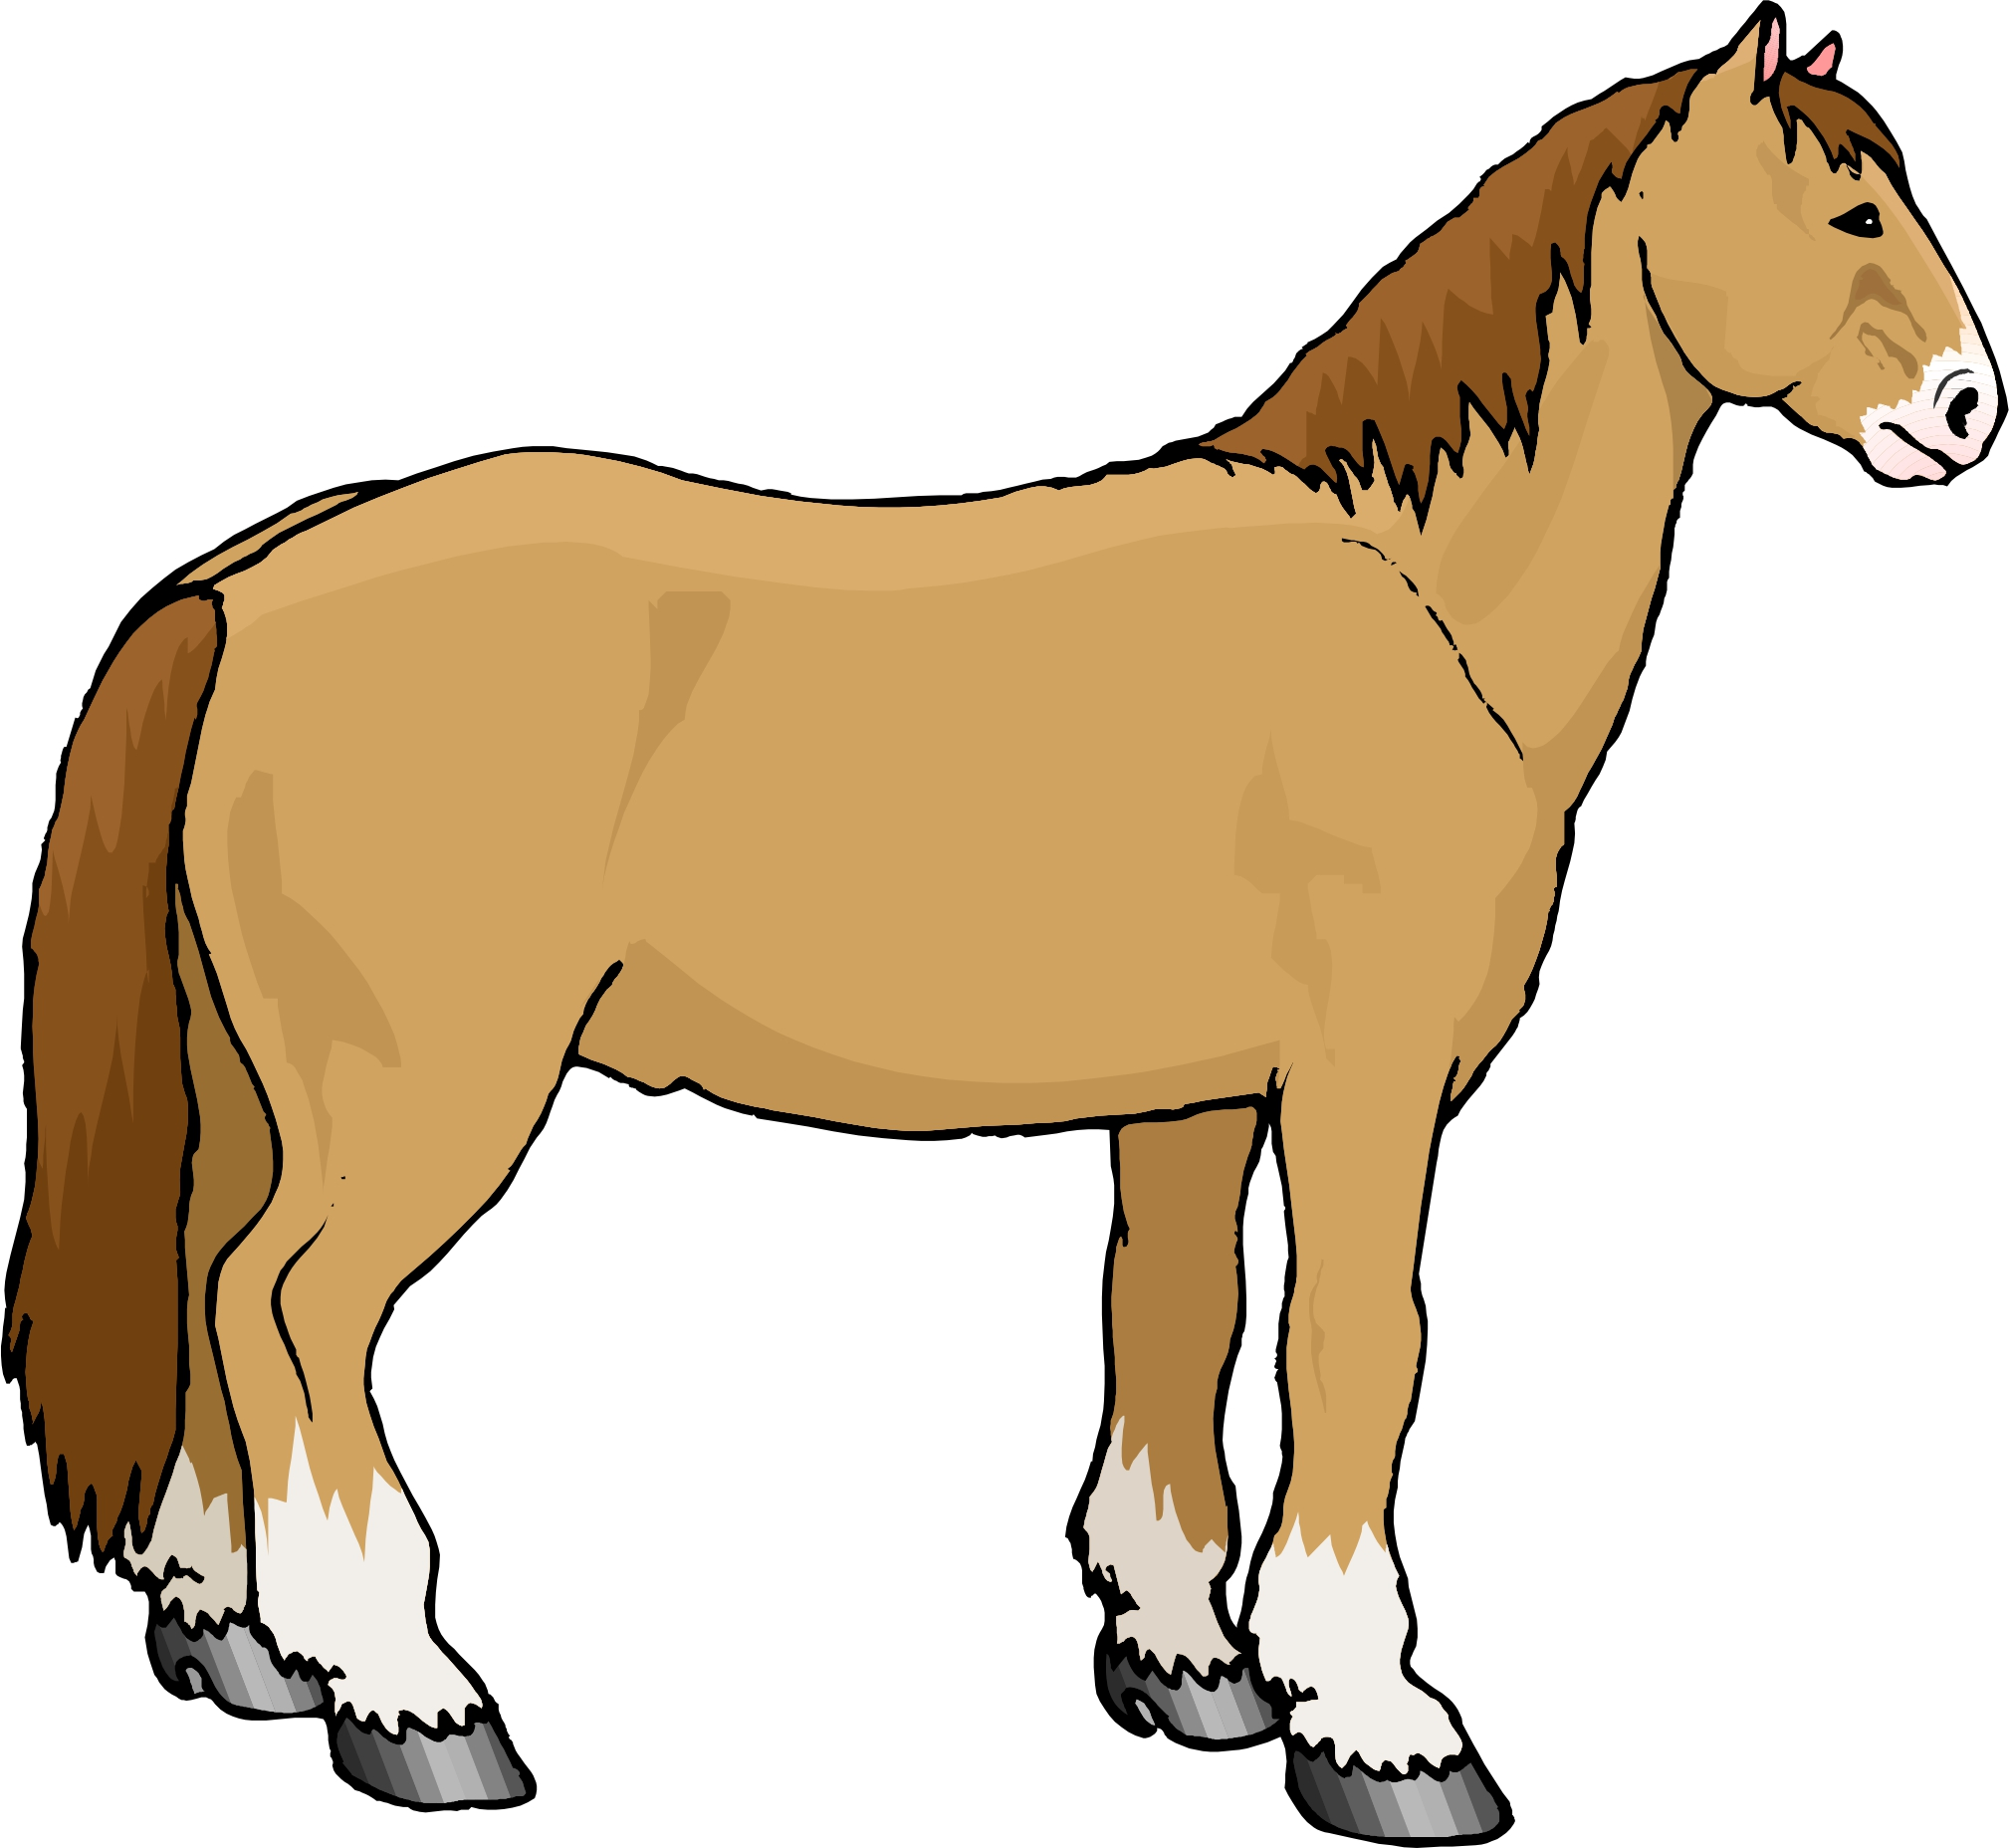 clipart picture of a horse - photo #25